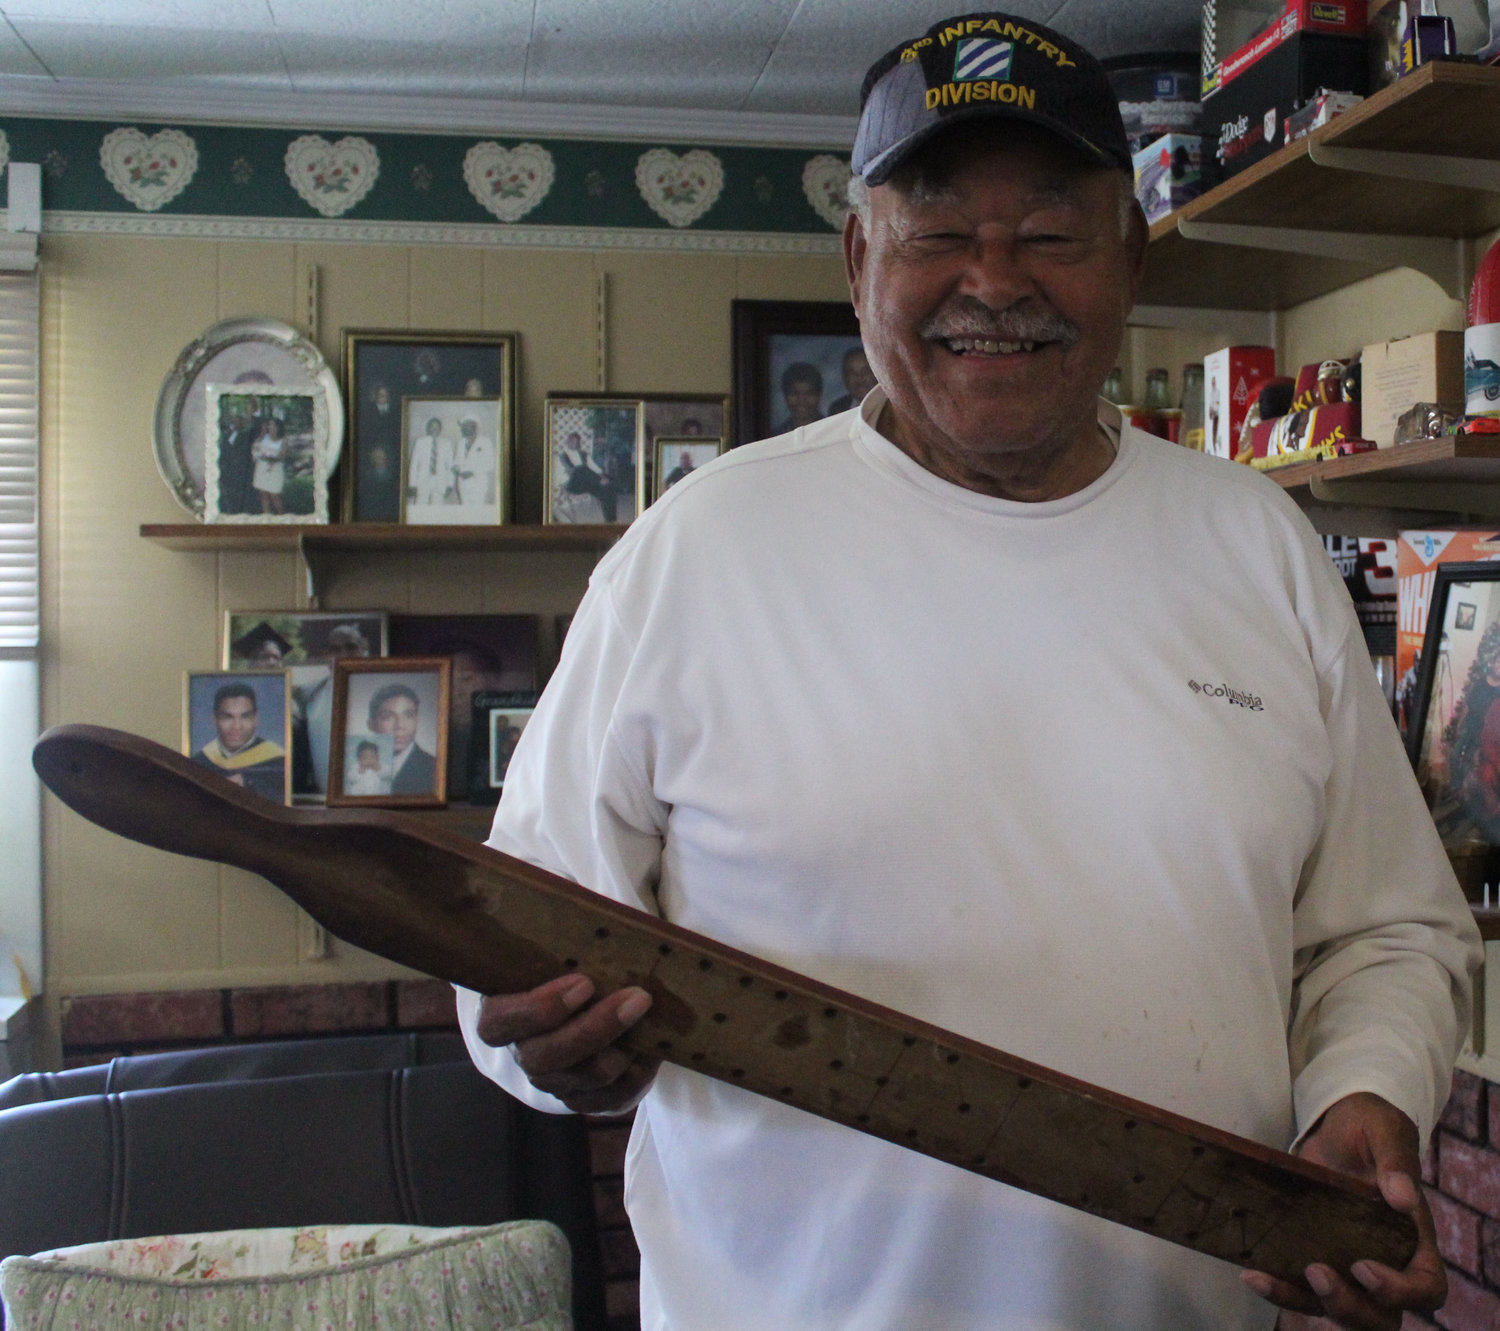 Robert Reid holds a paddle made for him by his students. It is on display in a room in his home.